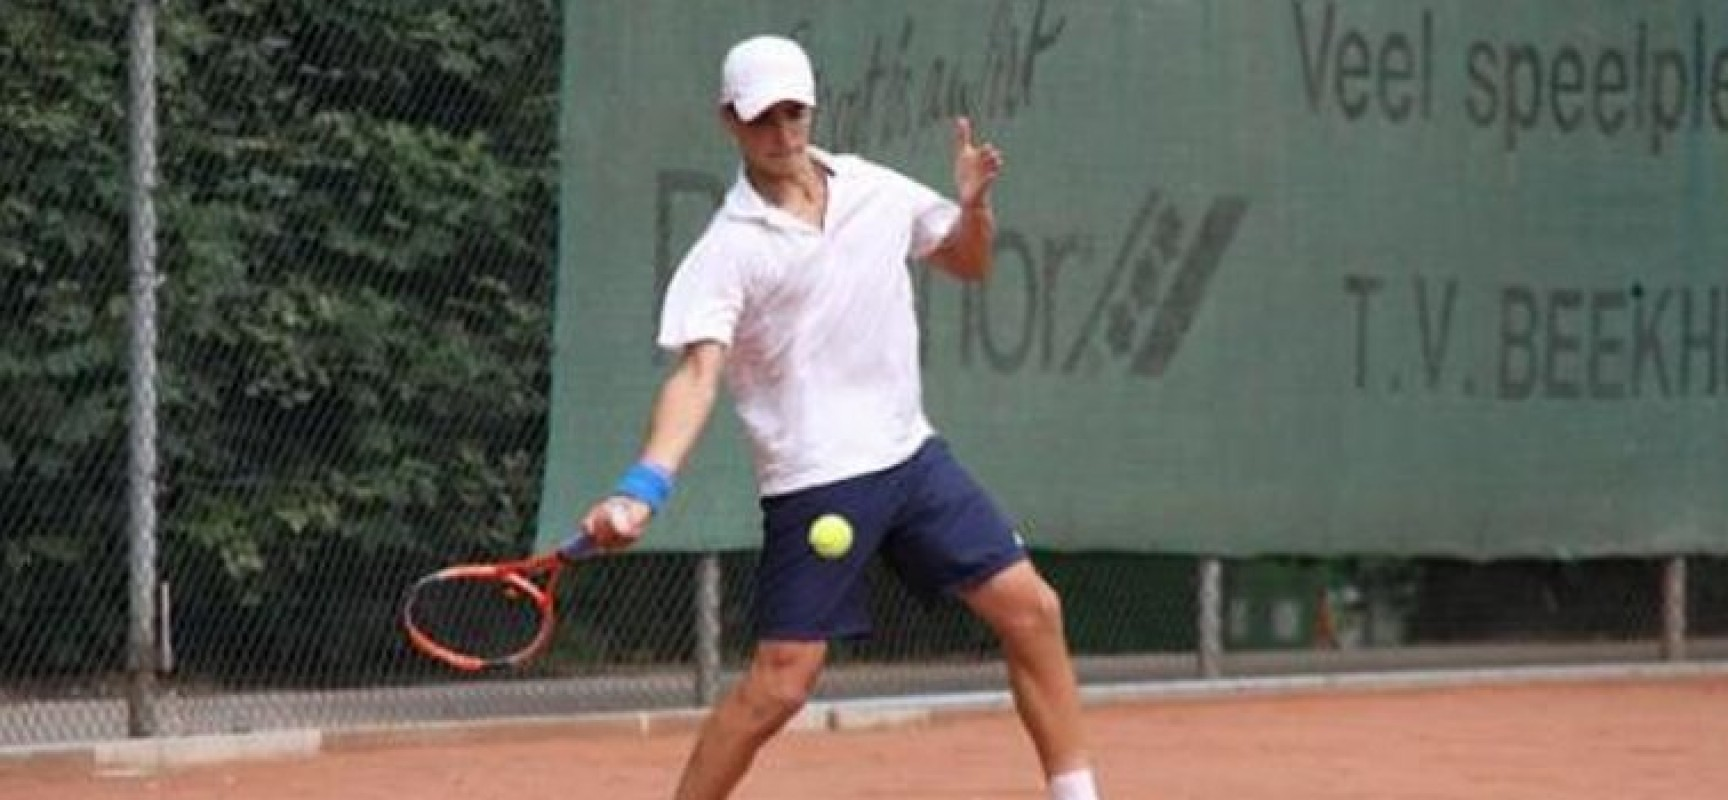 Tennis, Andrea Pellegrino eliminato in Francia